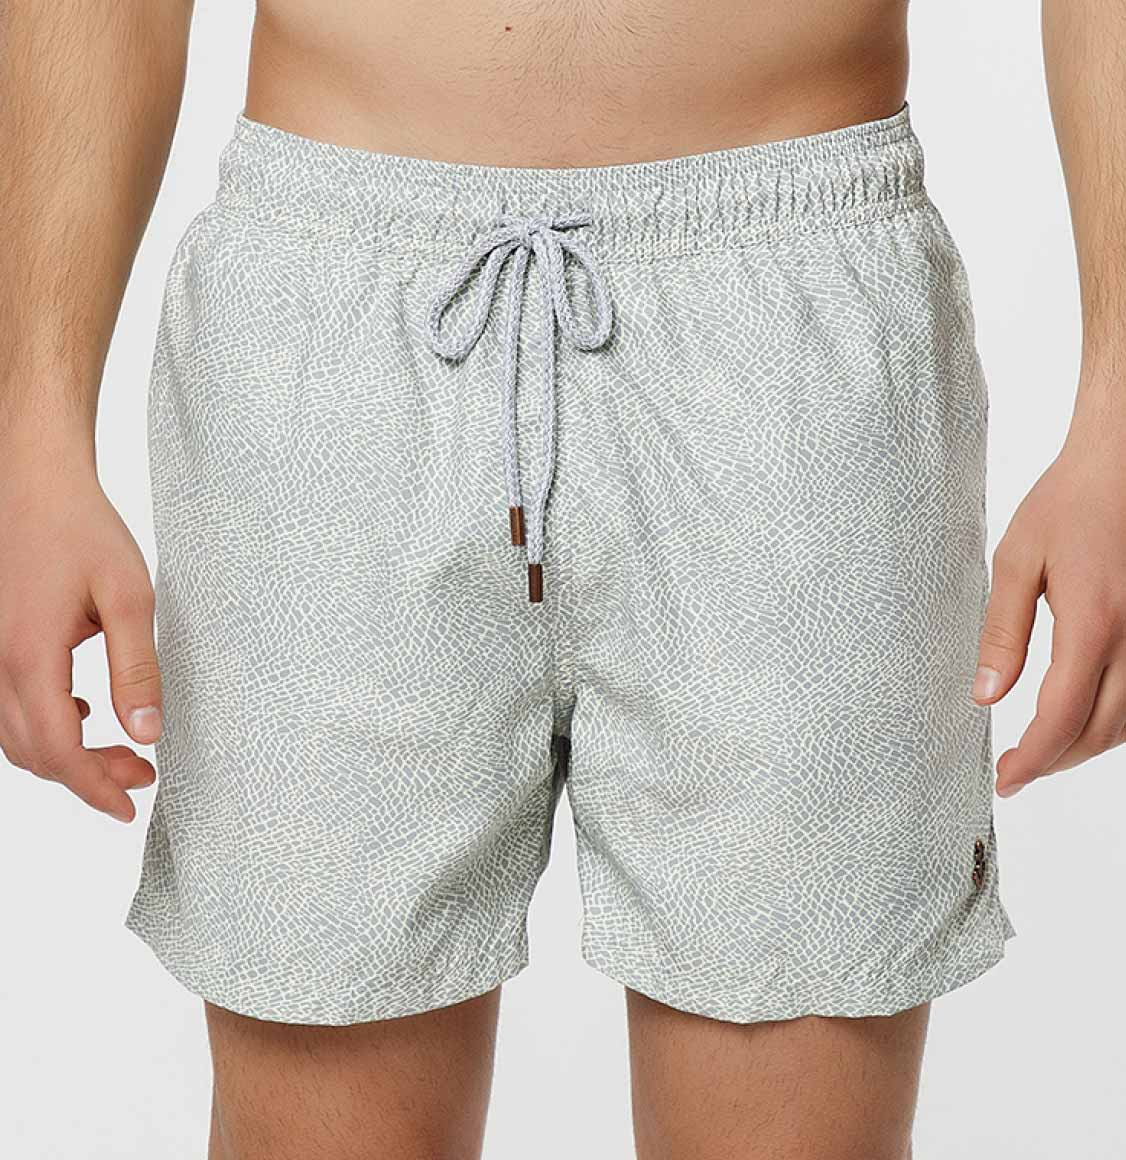 Retromarine Elephant Skin Gray Cream Swim Shorts